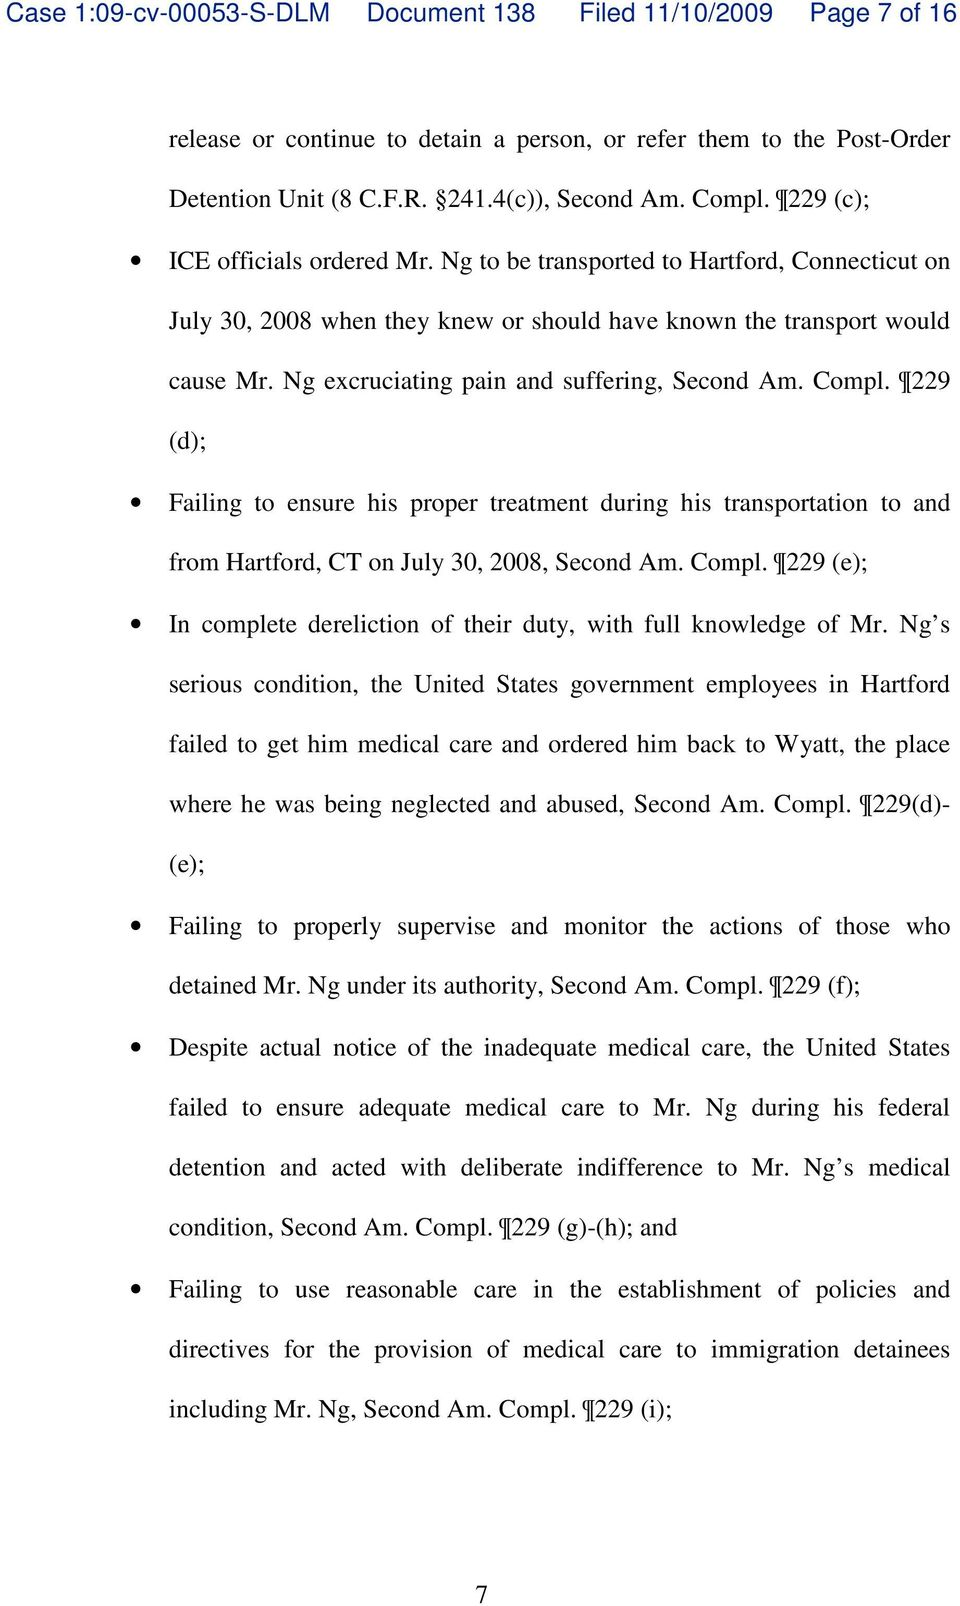 Ng excruciating pain and suffering, Second Am. Compl. 229 (d); Failing to ensure his proper treatment during his transportation to and from Hartford, CT on July 30, 2008, Second Am. Compl. 229 (e); In complete dereliction of their duty, with full knowledge of Mr.